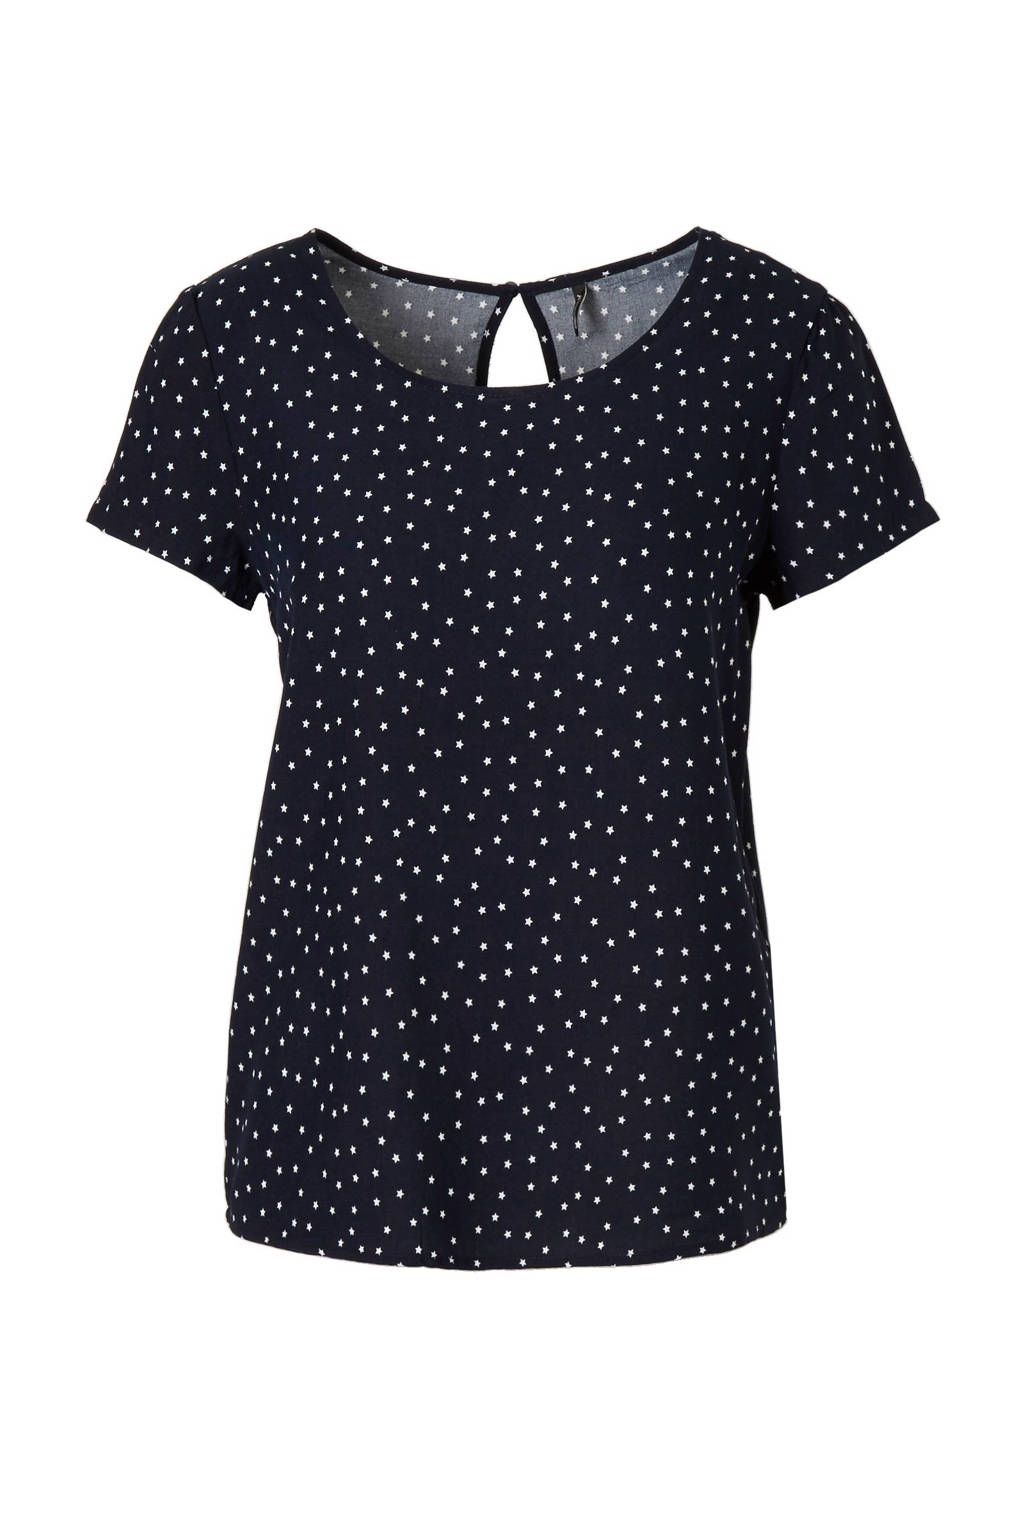 ONLY top, Donkerblauw/wit